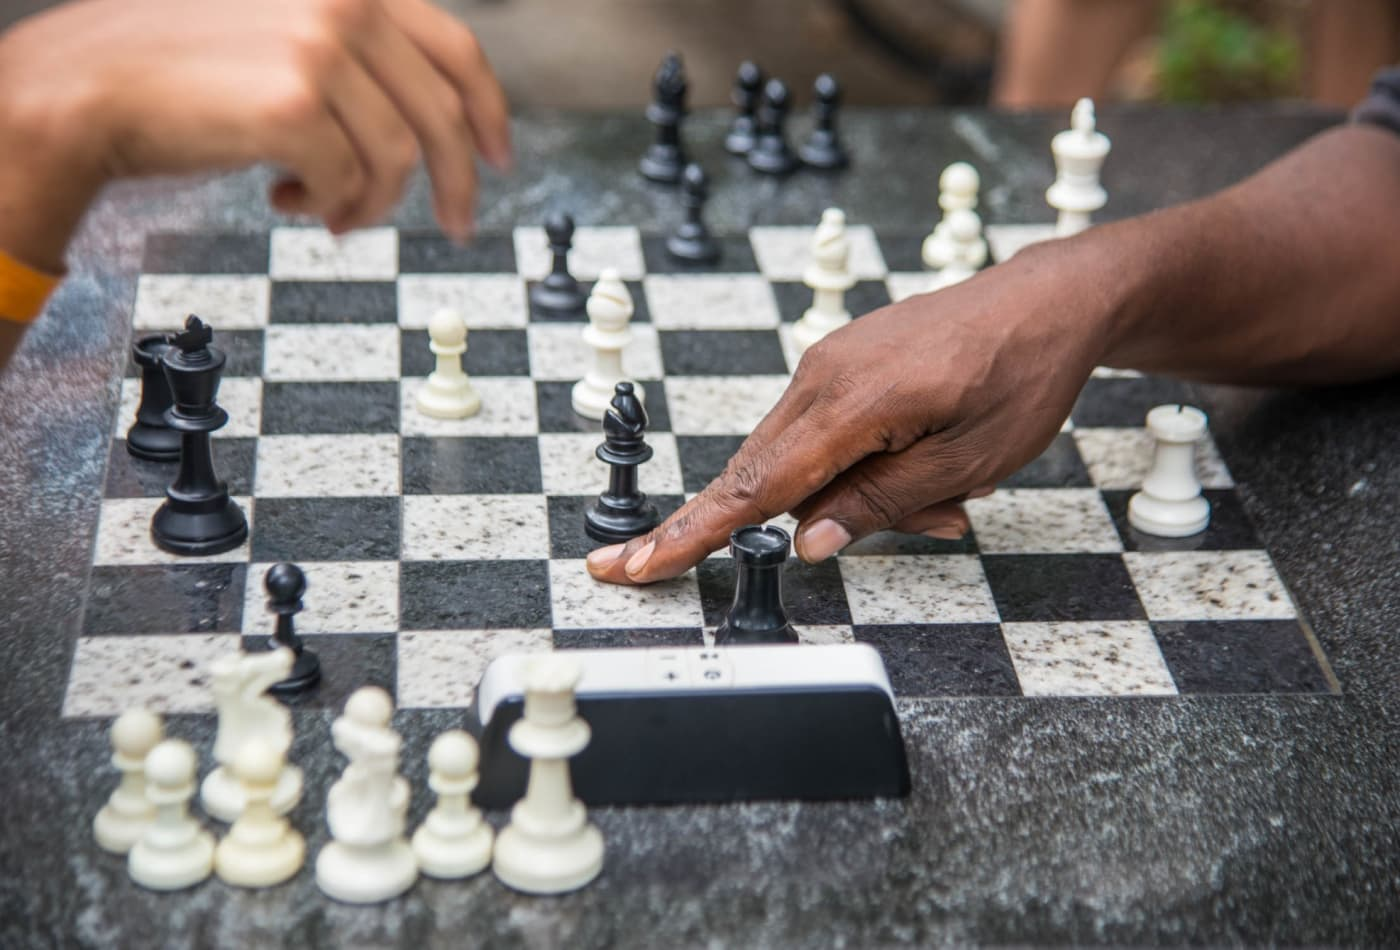 Chess grandmasters can lose 10 pounds and burn 6,000 calories just by sitting